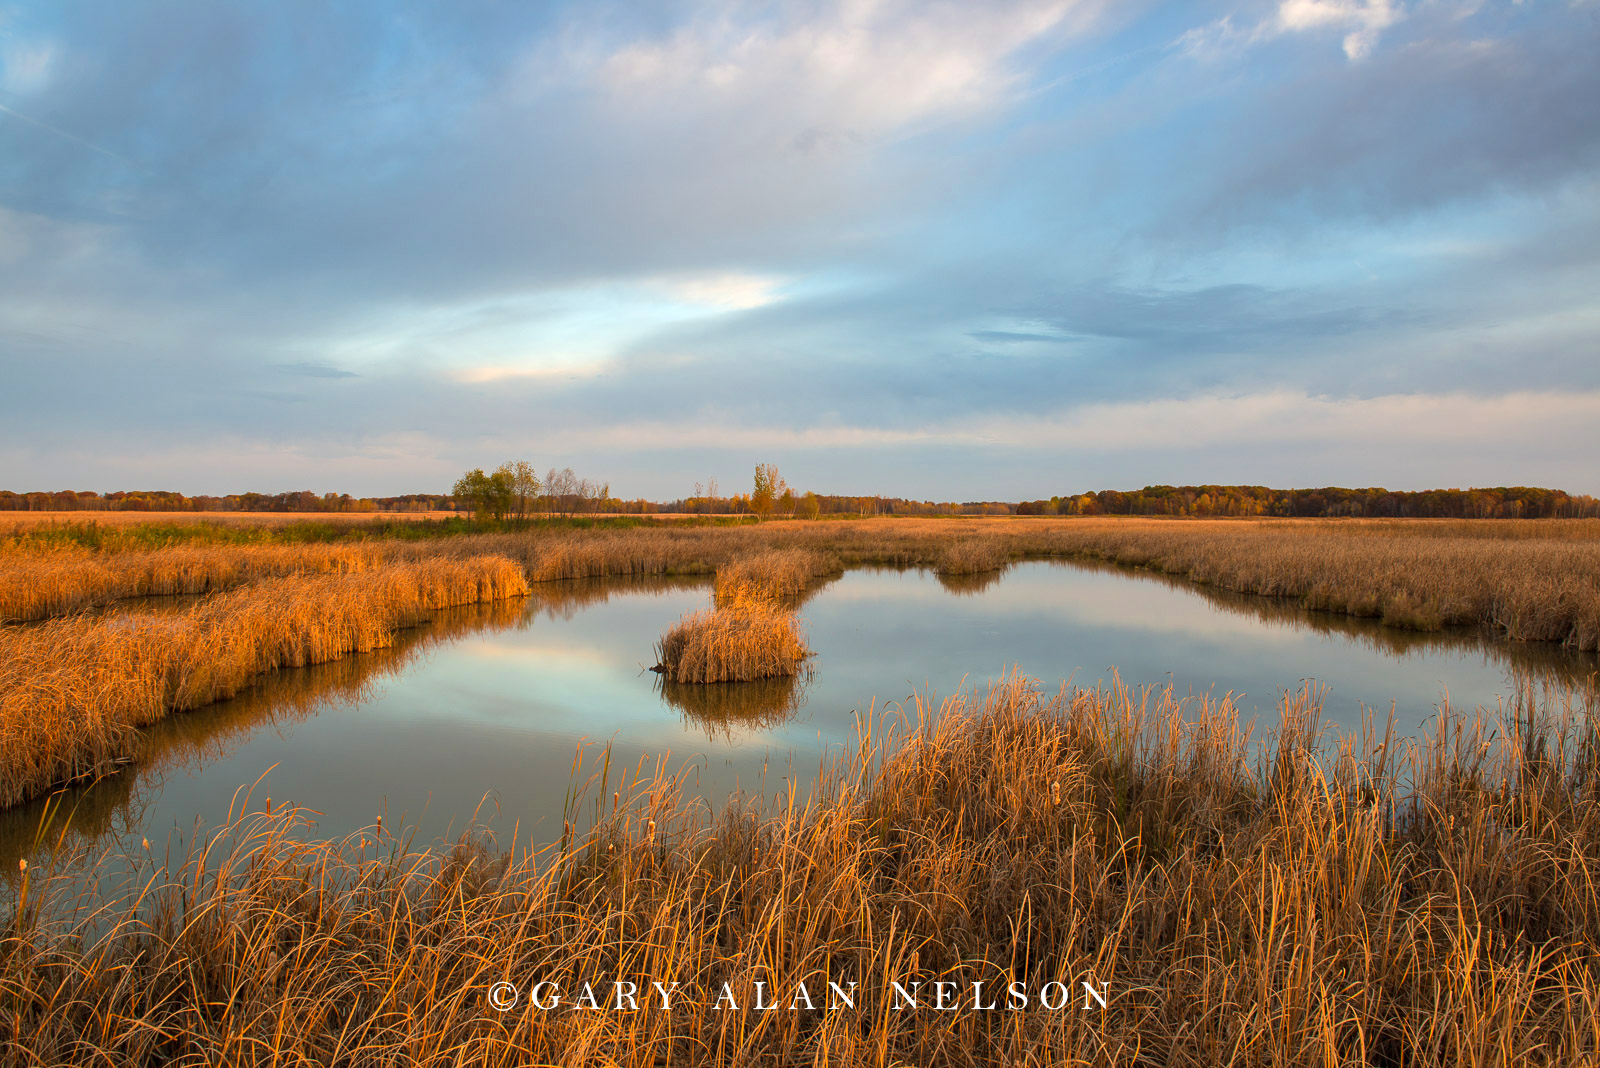 Carlos Avery, cattail marsh, minnesota, wildlife management area, photo